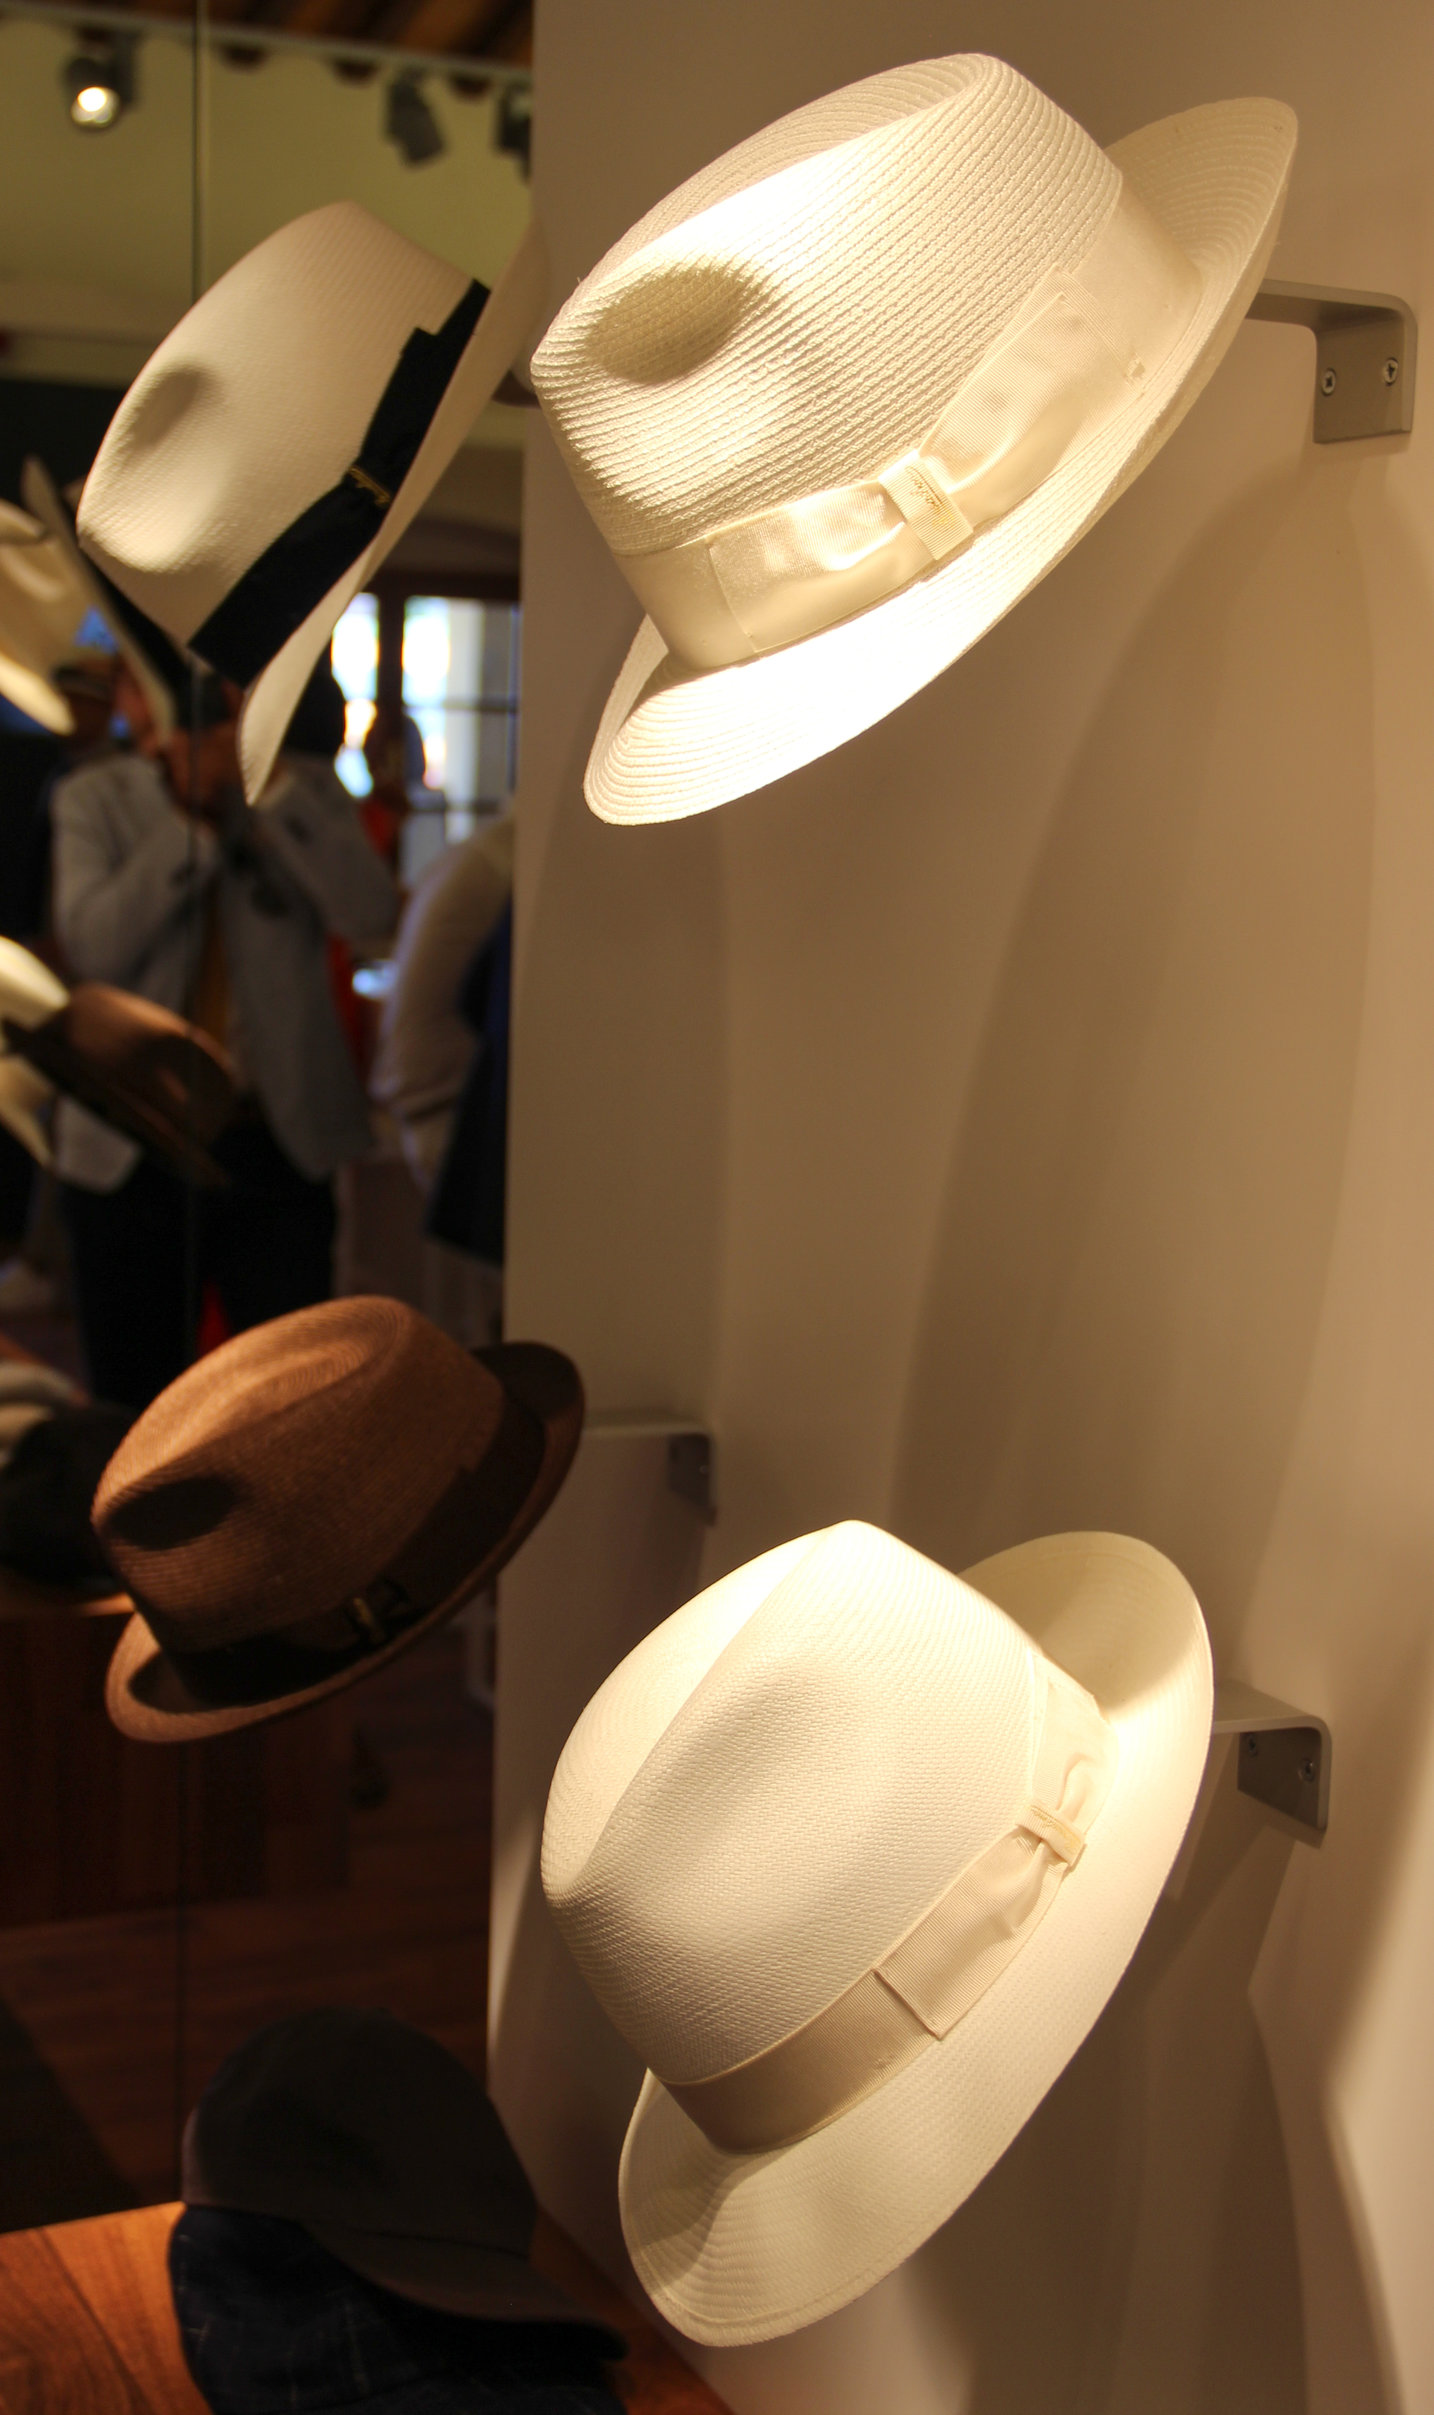 Pitti uomo 90 - Borsalino Hats by LONG STORY SHORT